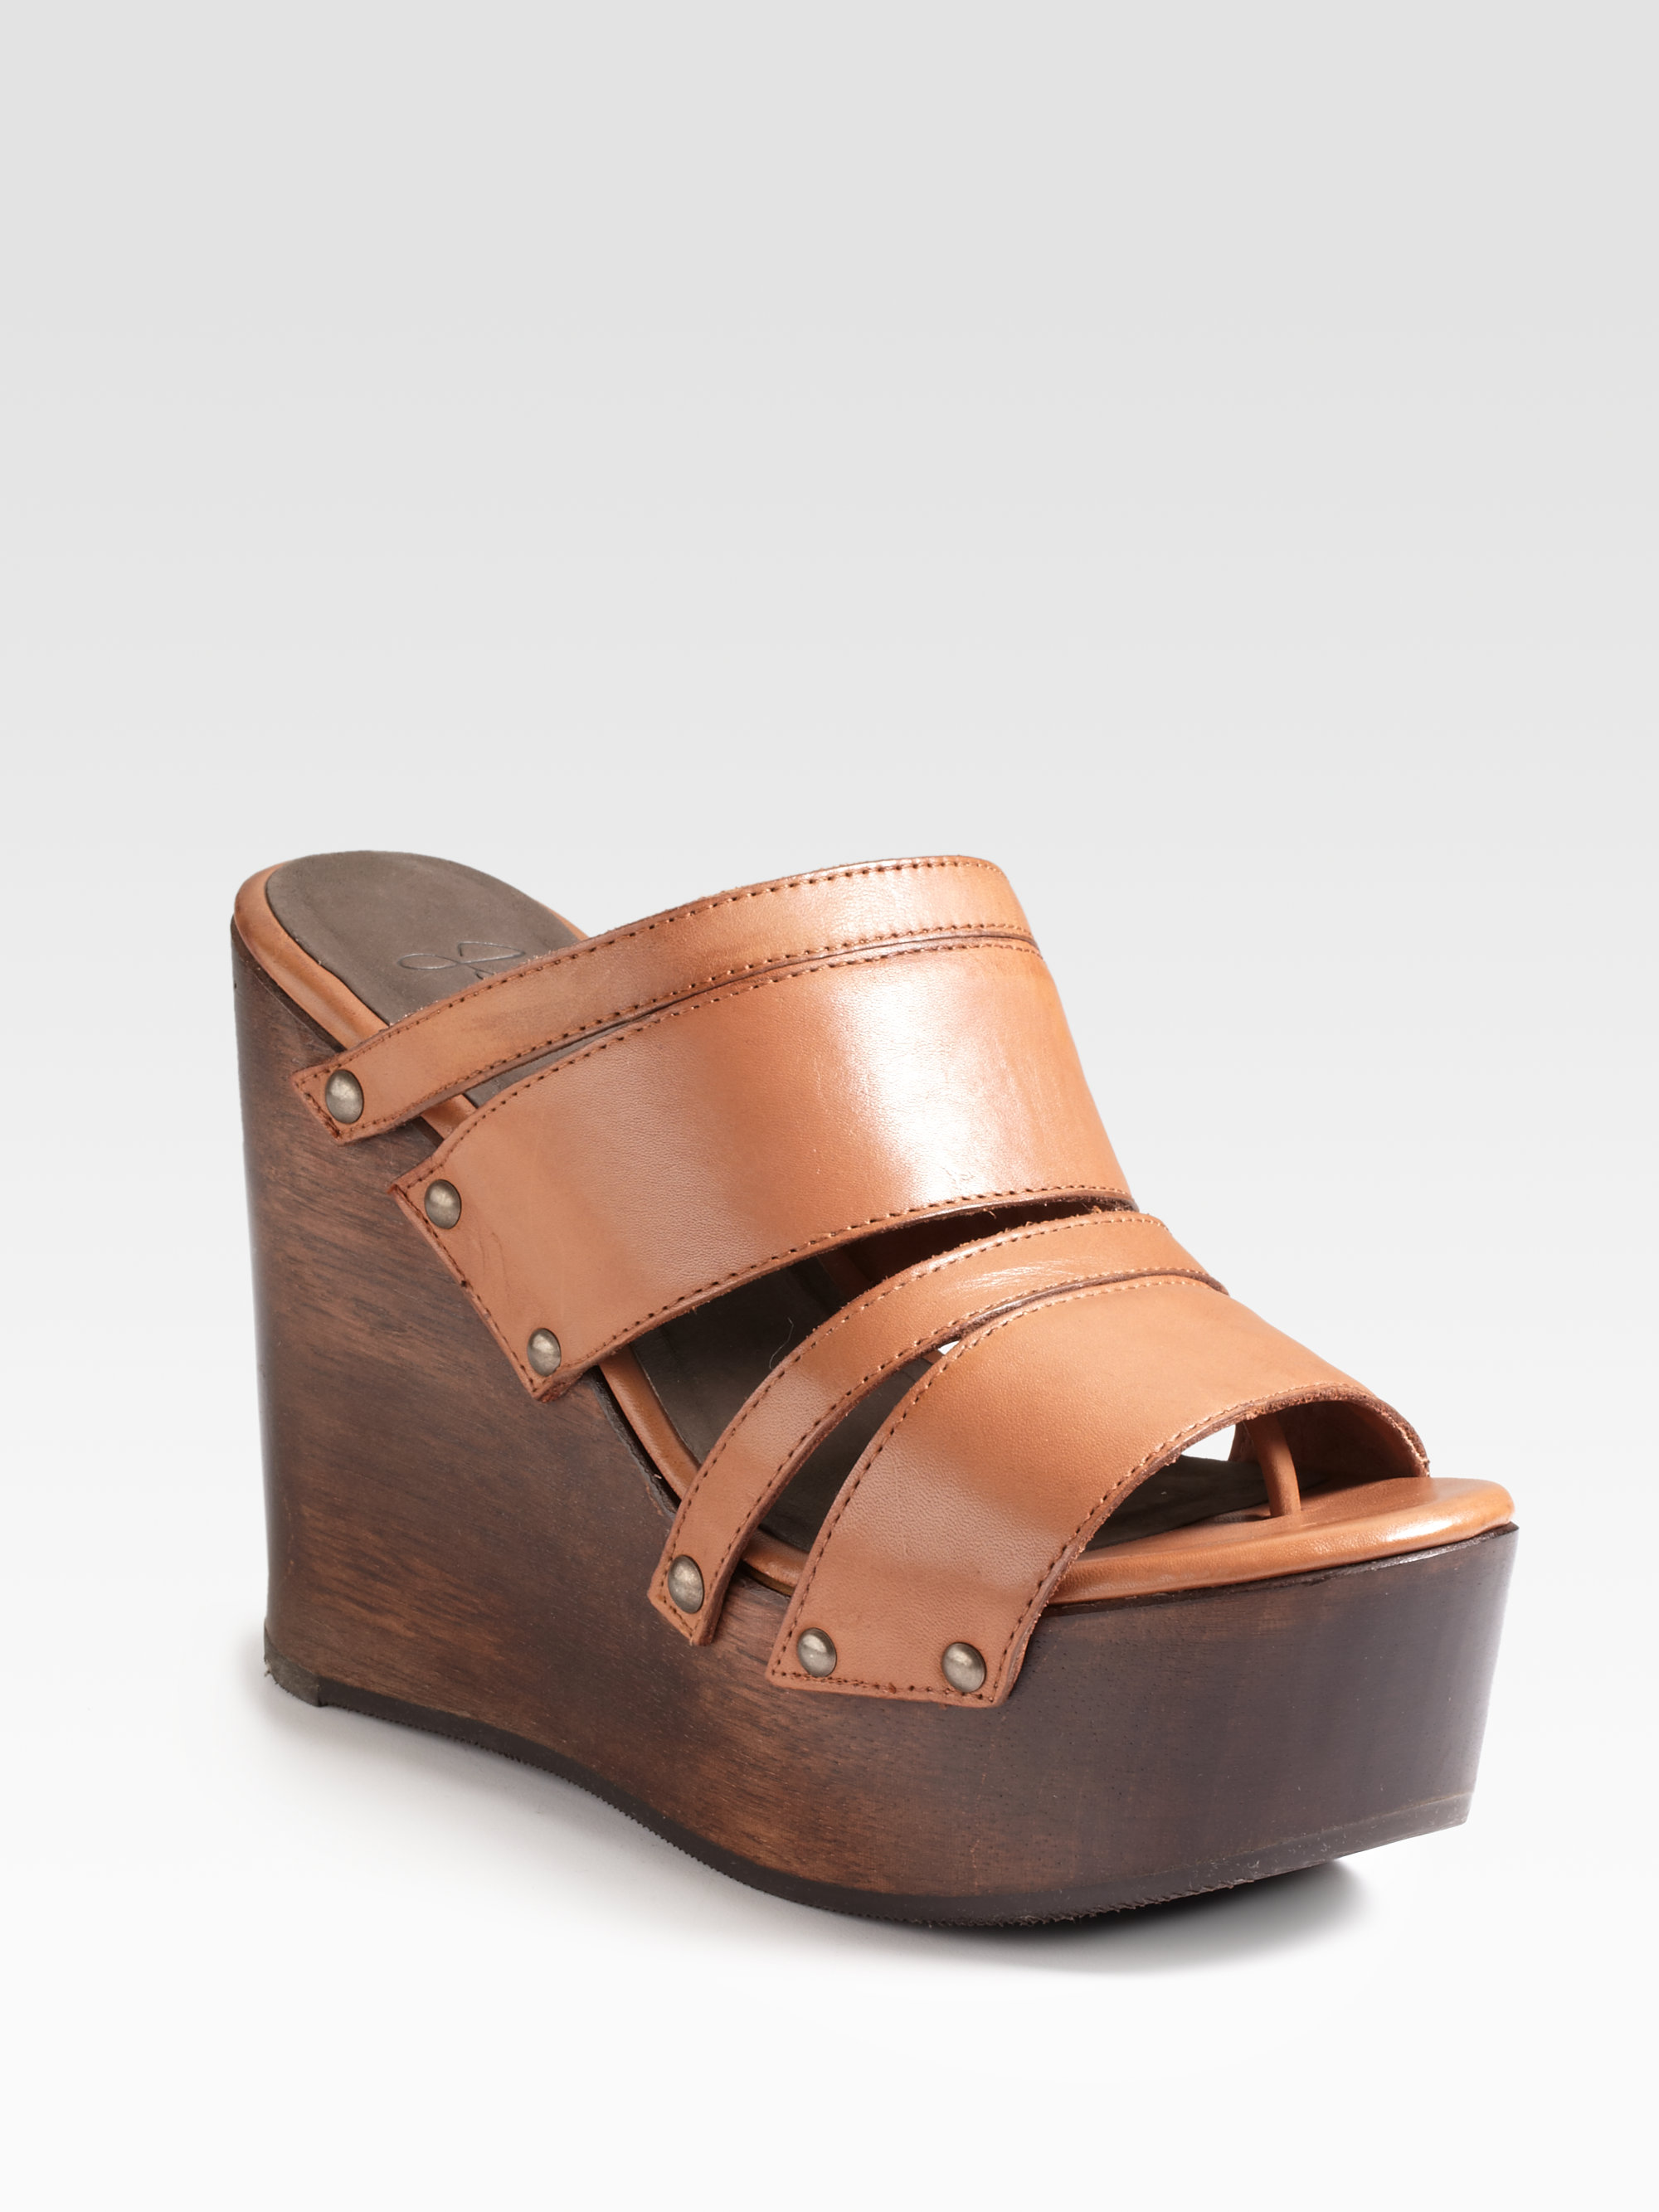 c1b53fe6e14 Lyst - Joie Womack Wooden Platform Wedge Sandals in Brown